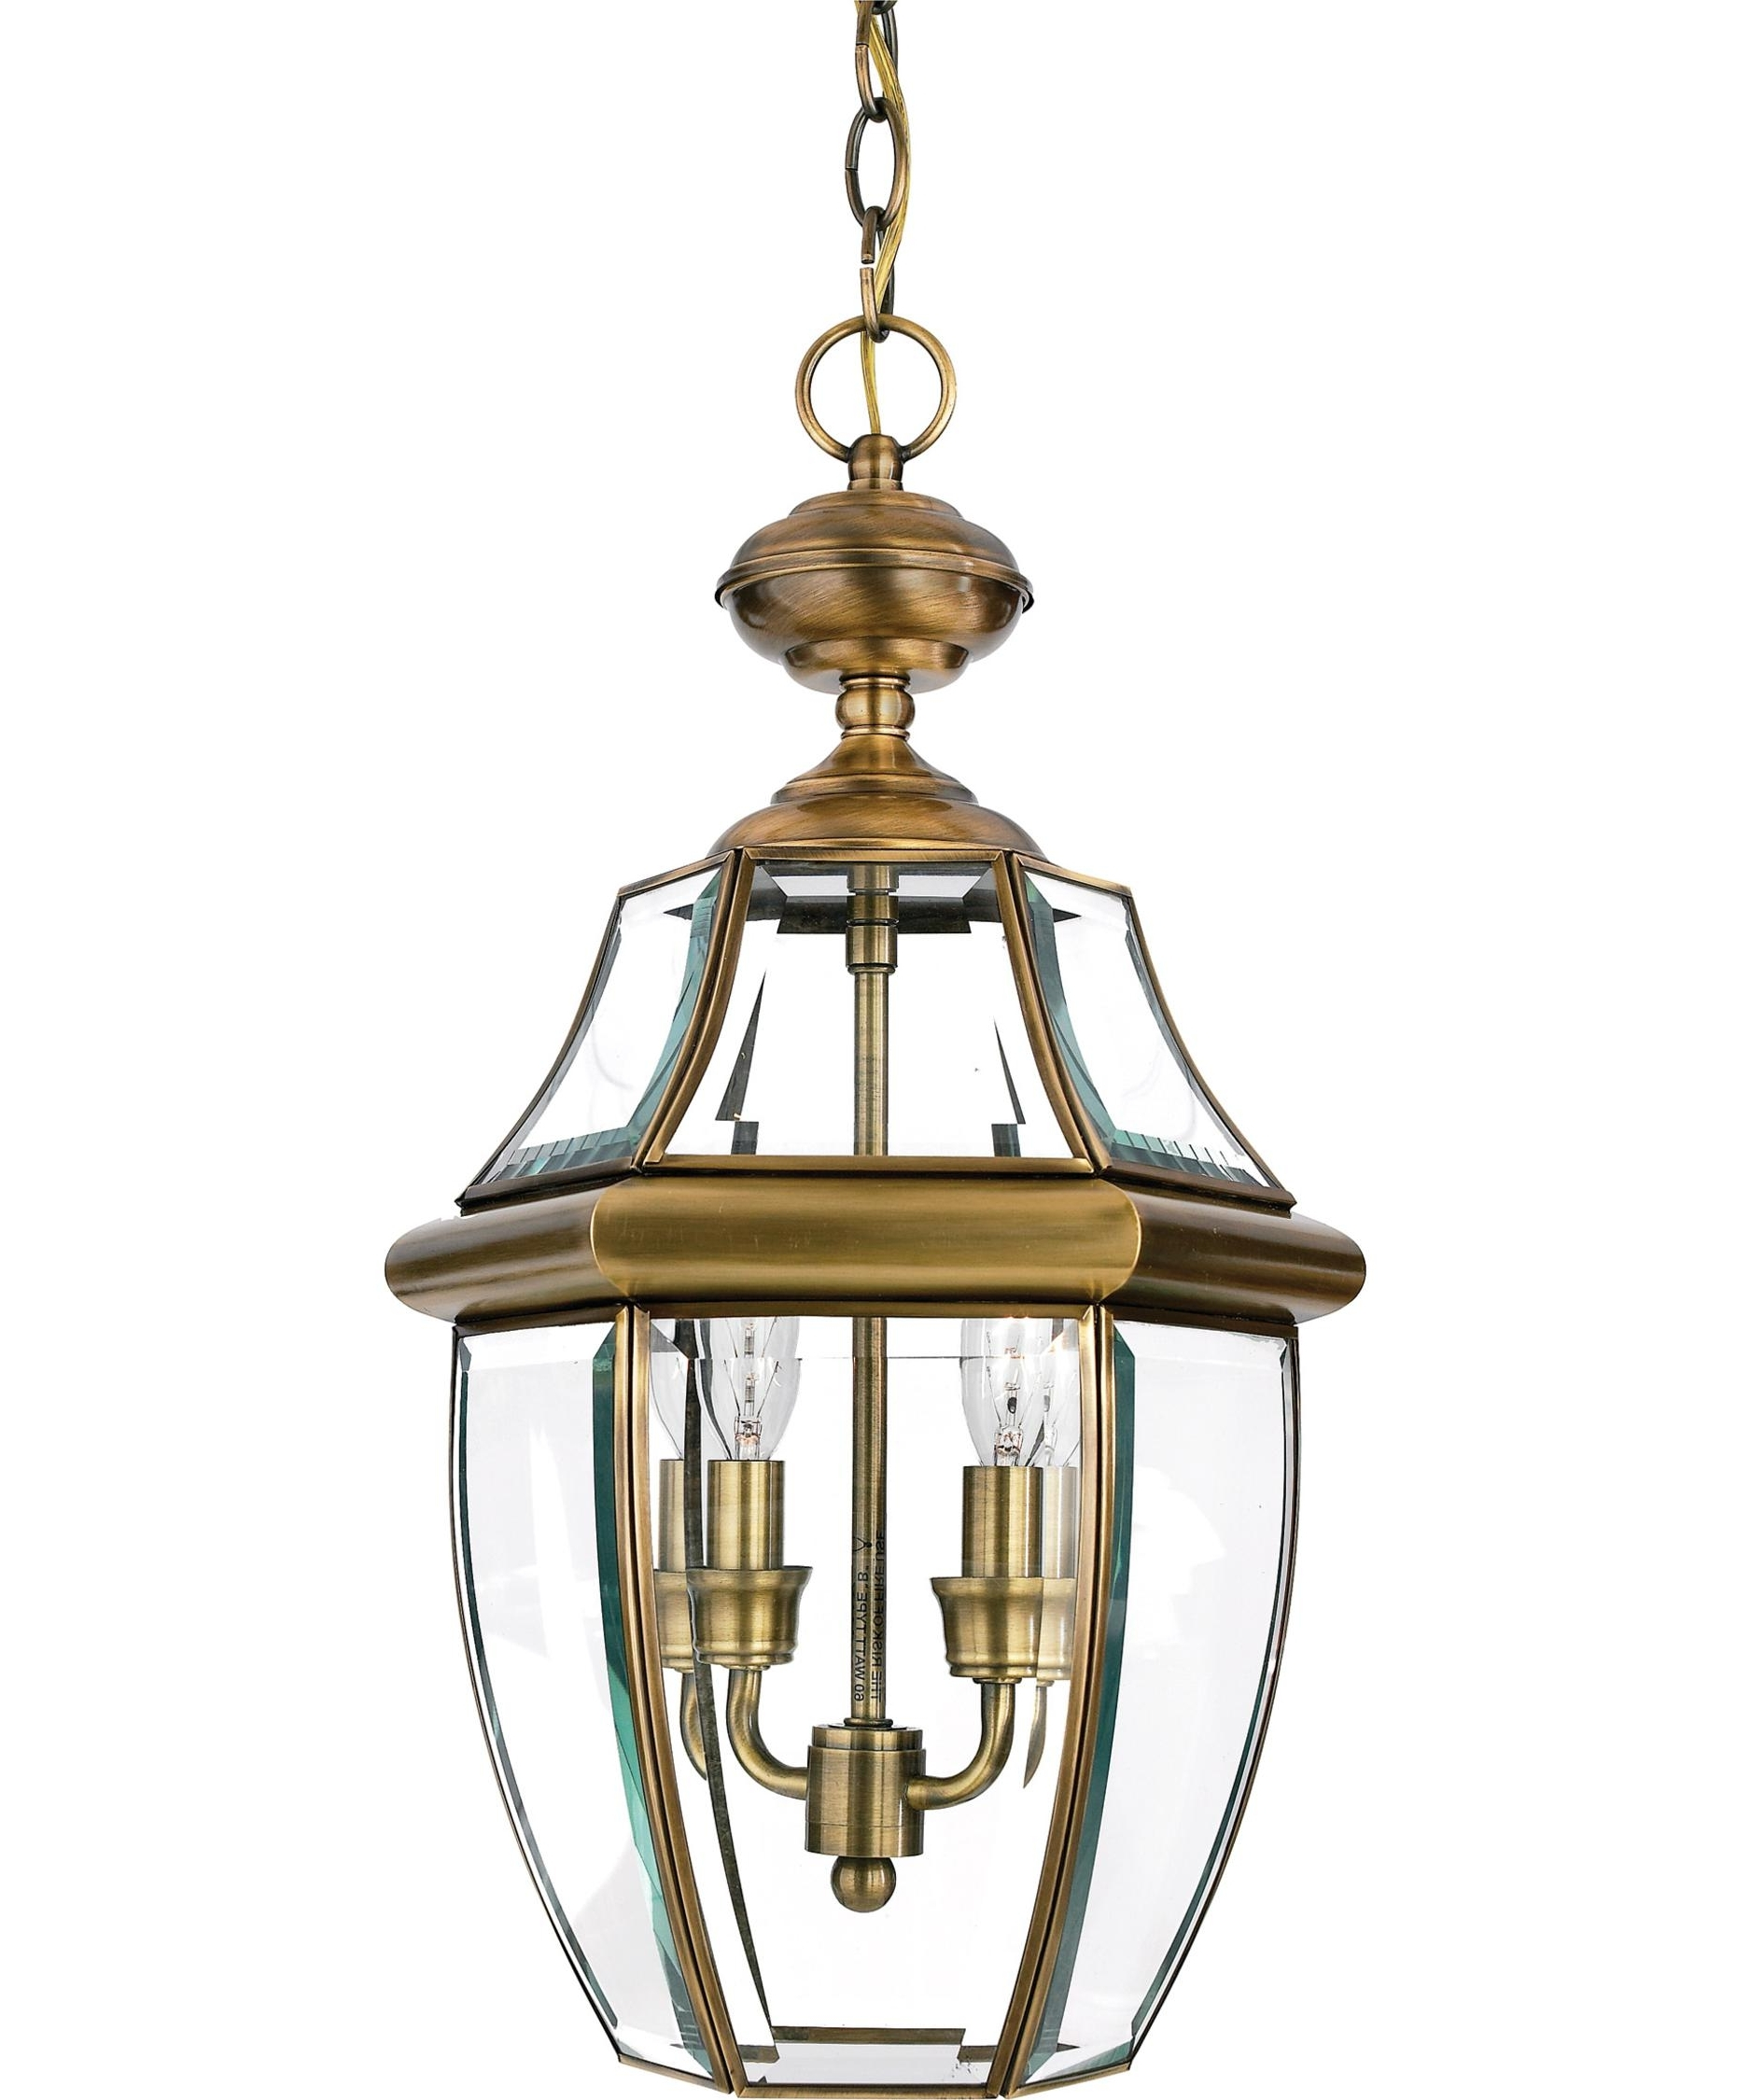 Gold Outdoor Lanterns Intended For Famous Quoizel Ny1178 Newbury 10 Inch Wide 2 Light Outdoor Hanging Lantern (Gallery 7 of 20)